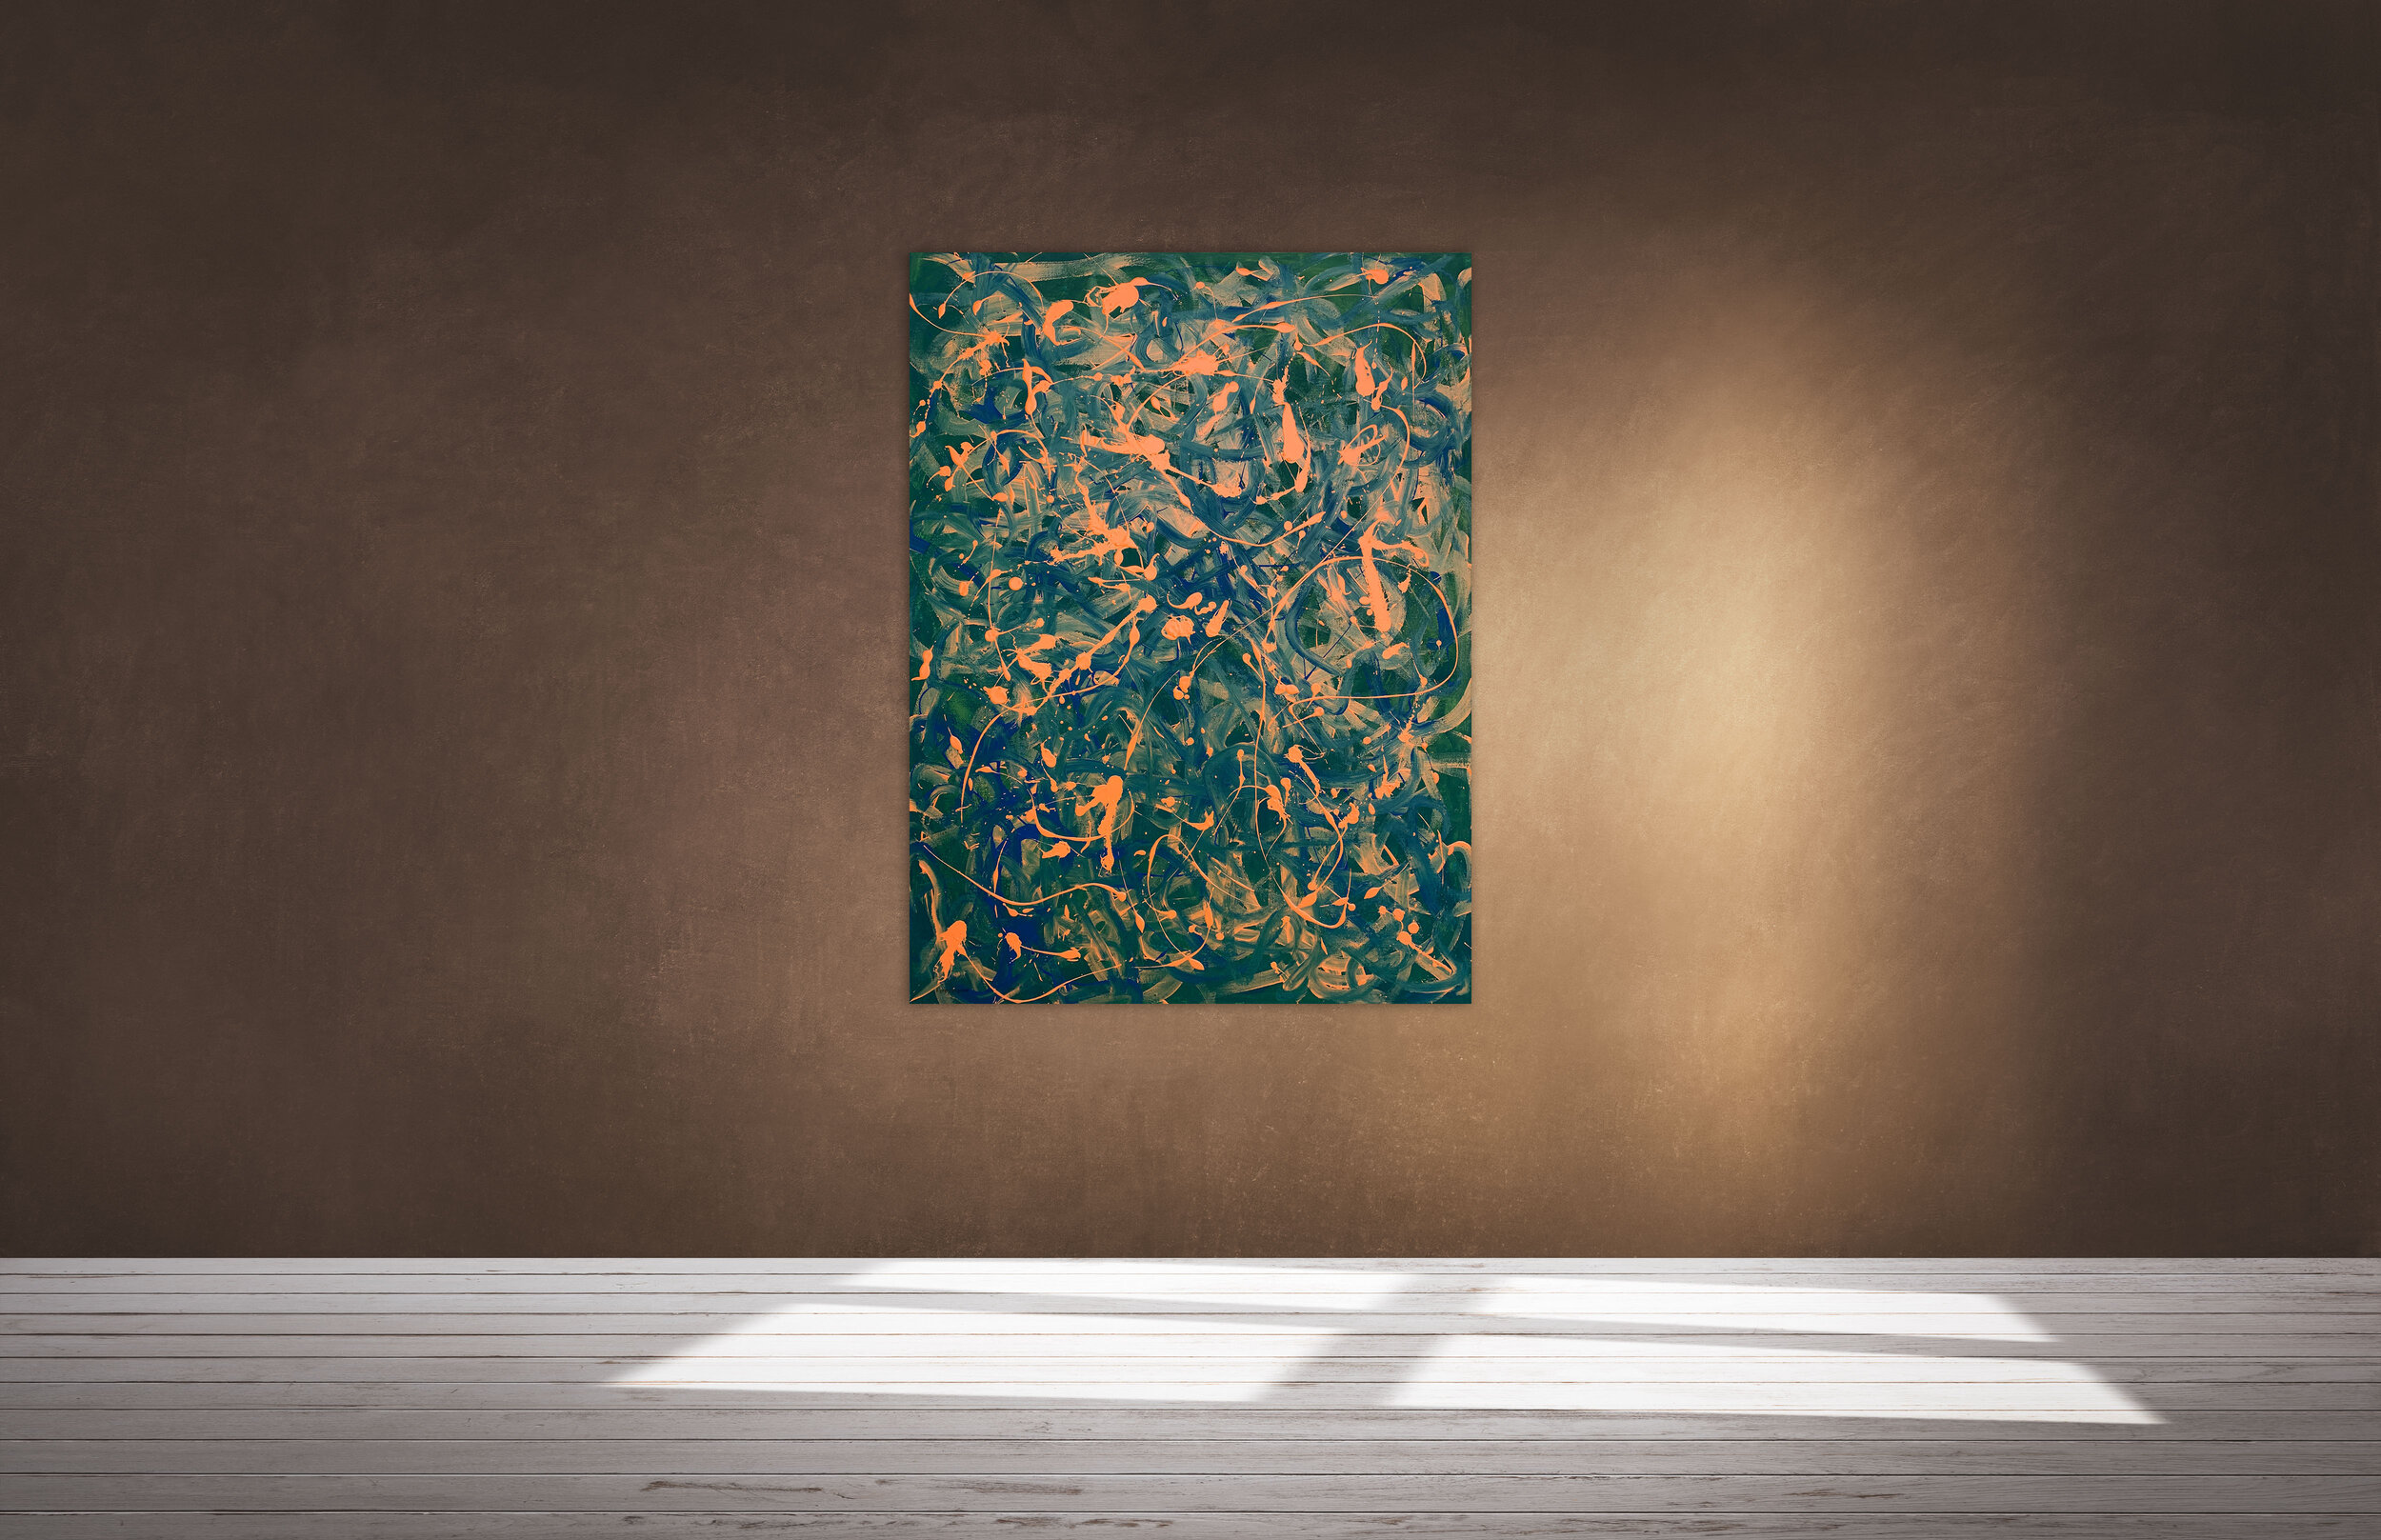 abstract-expressionism-painting-abstract-expressionism-painting-long-de-yi-nian-mockup.jpg